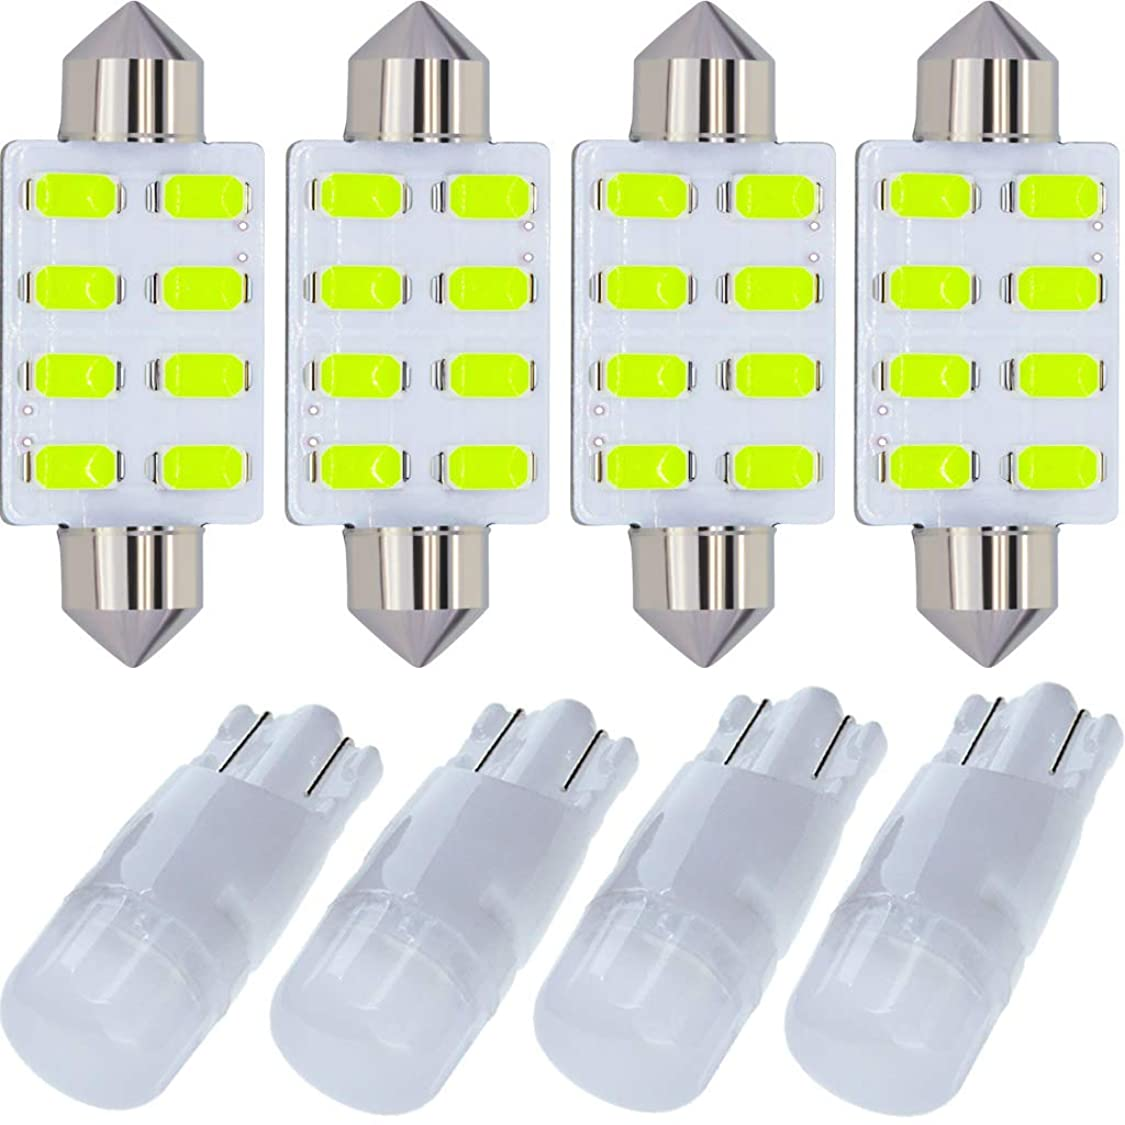 LED Kit Compatible for Doge Ram 1500 2500 3500 2002-2016 Charger 2006-2014 Bulb Interior Lights Package Replacement Ice Blue mj52695115785456